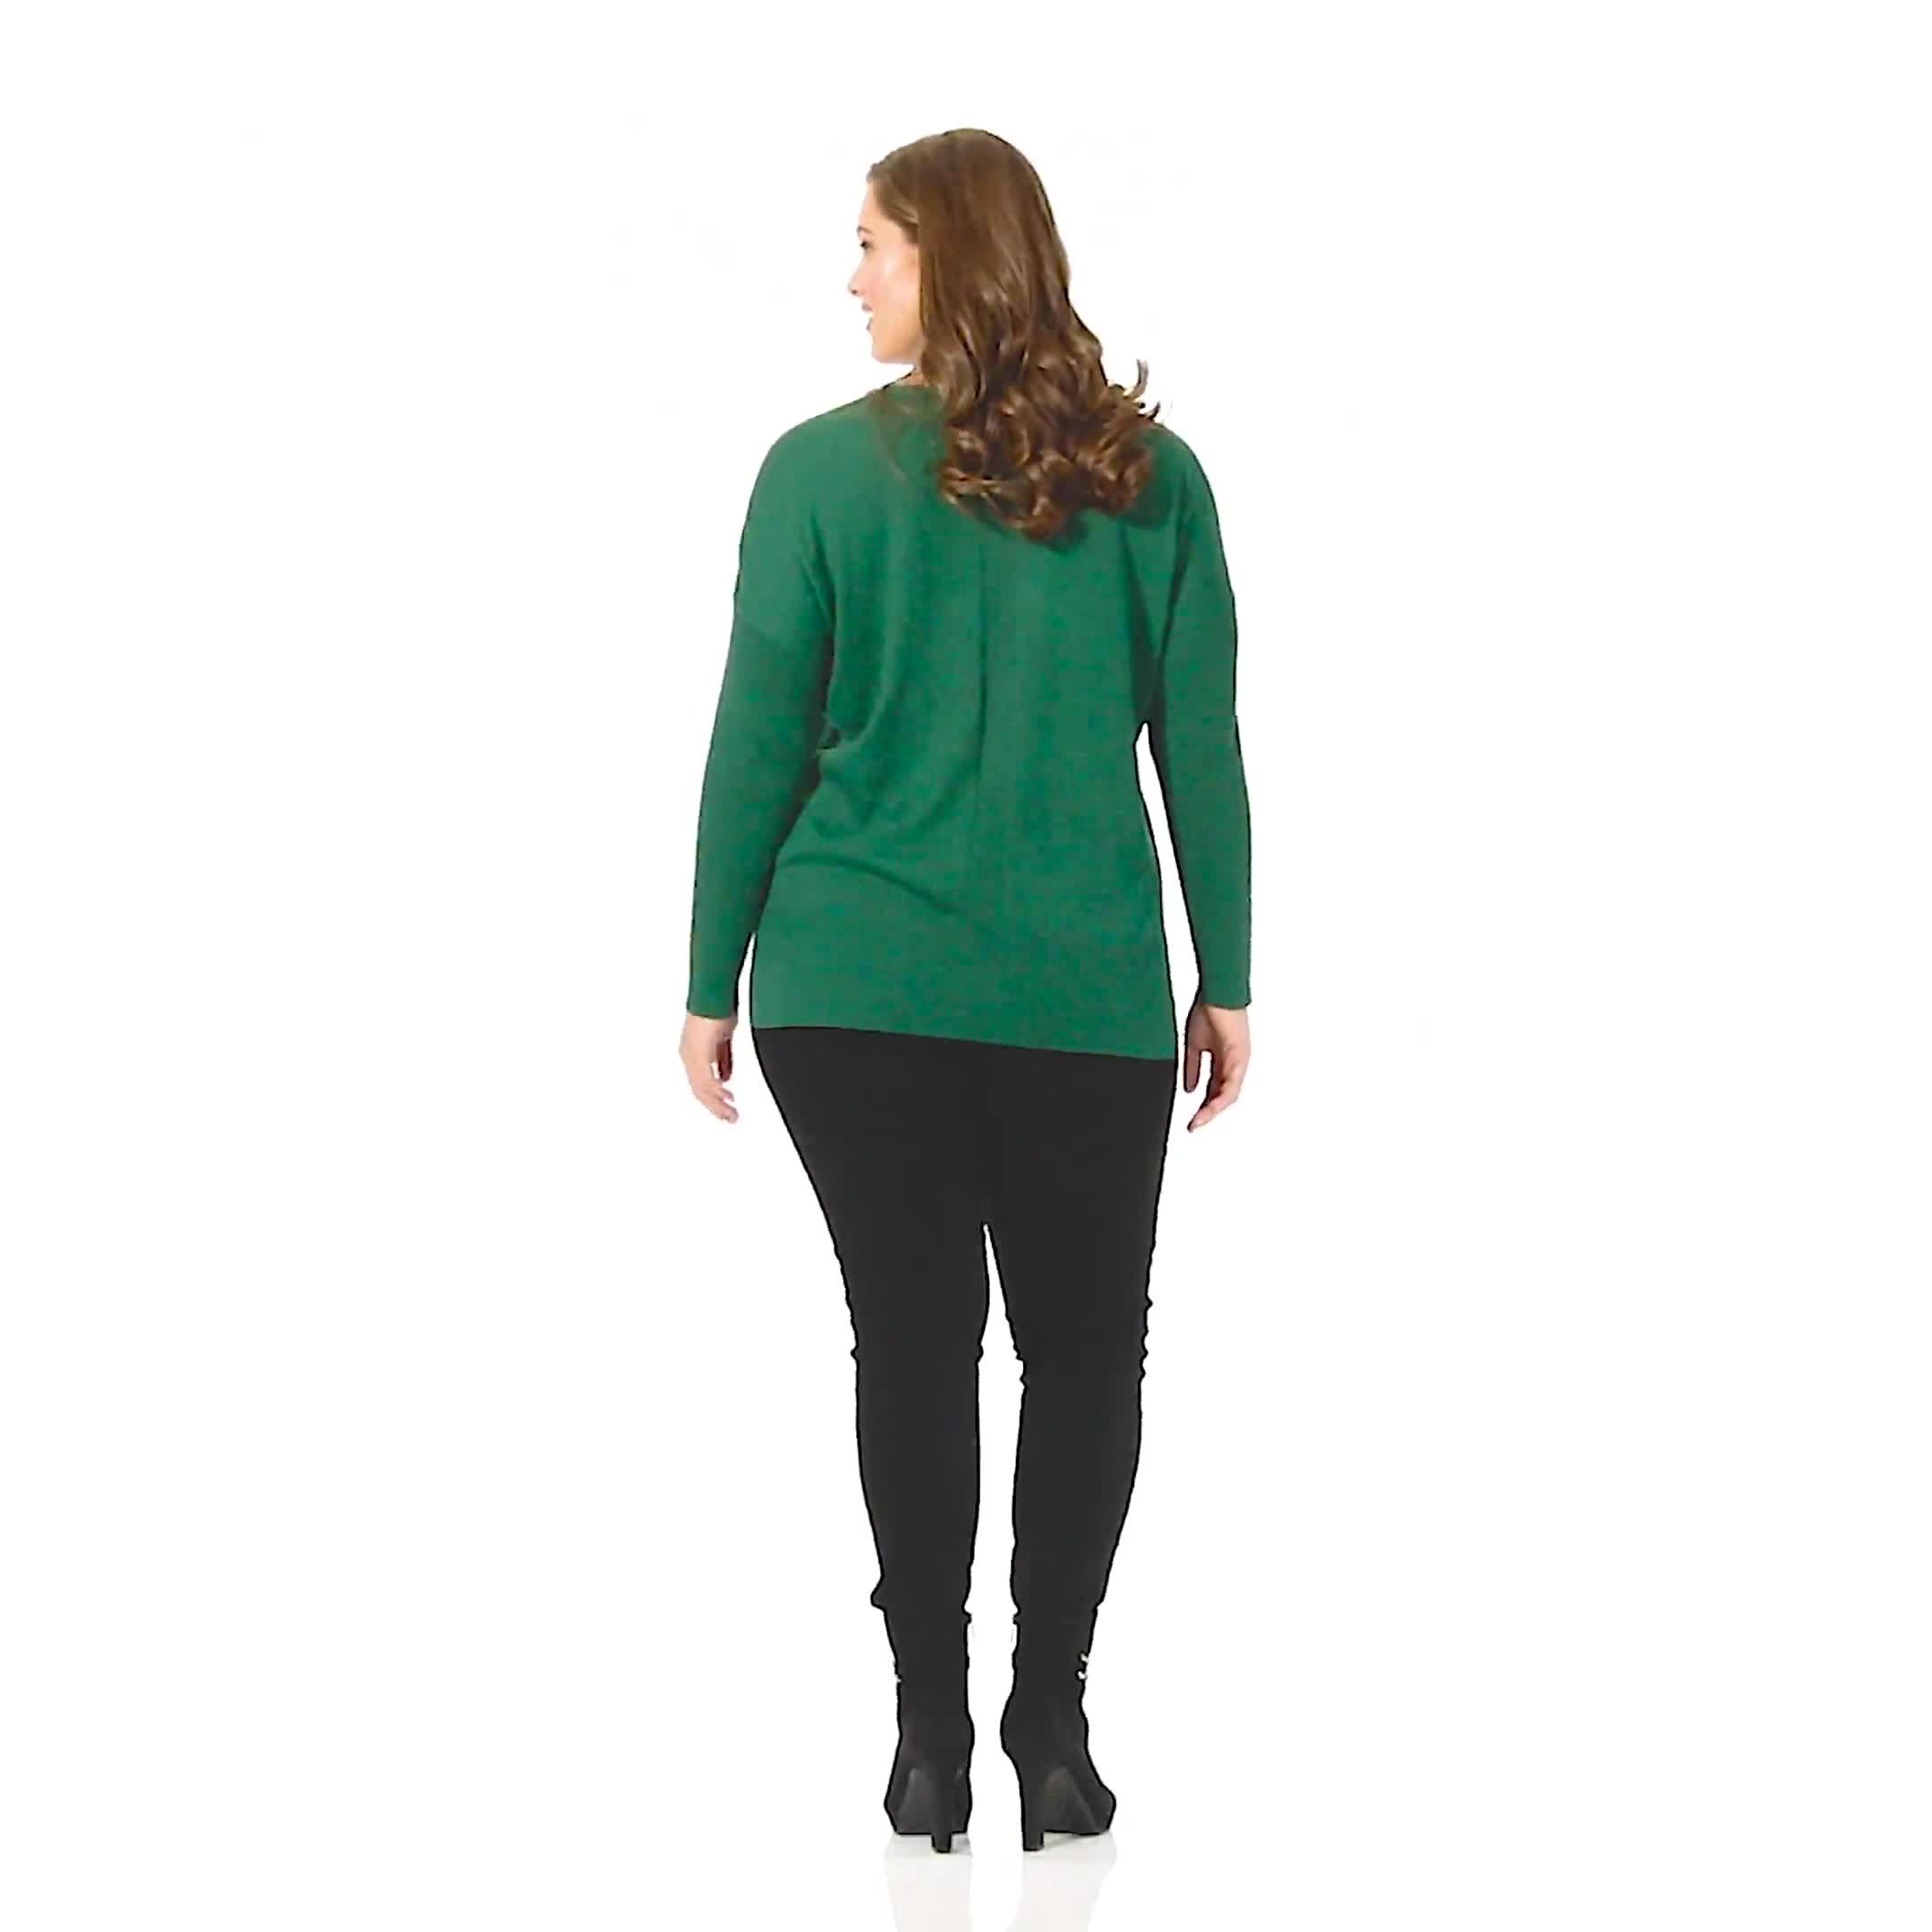 Roz & Ali Beaded Sweater Tunic - Plus - Video